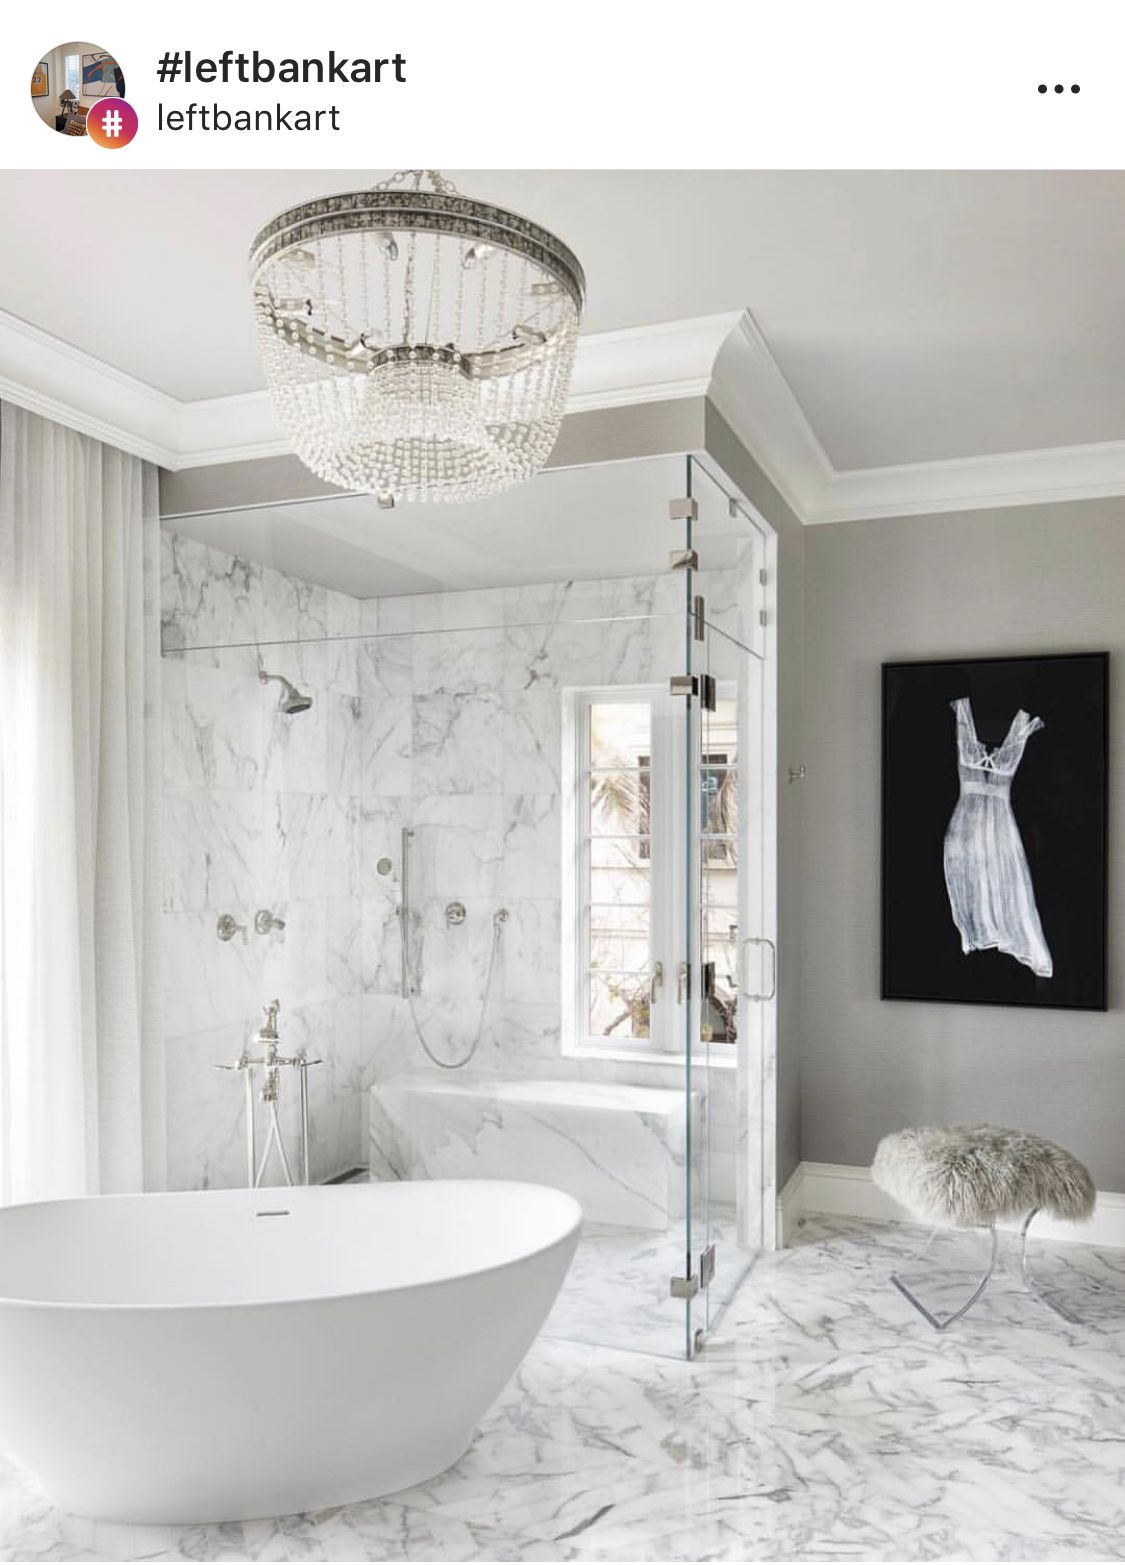 Pin by Jennifer Adams on ART | Timeless bathroom, Elegant ...